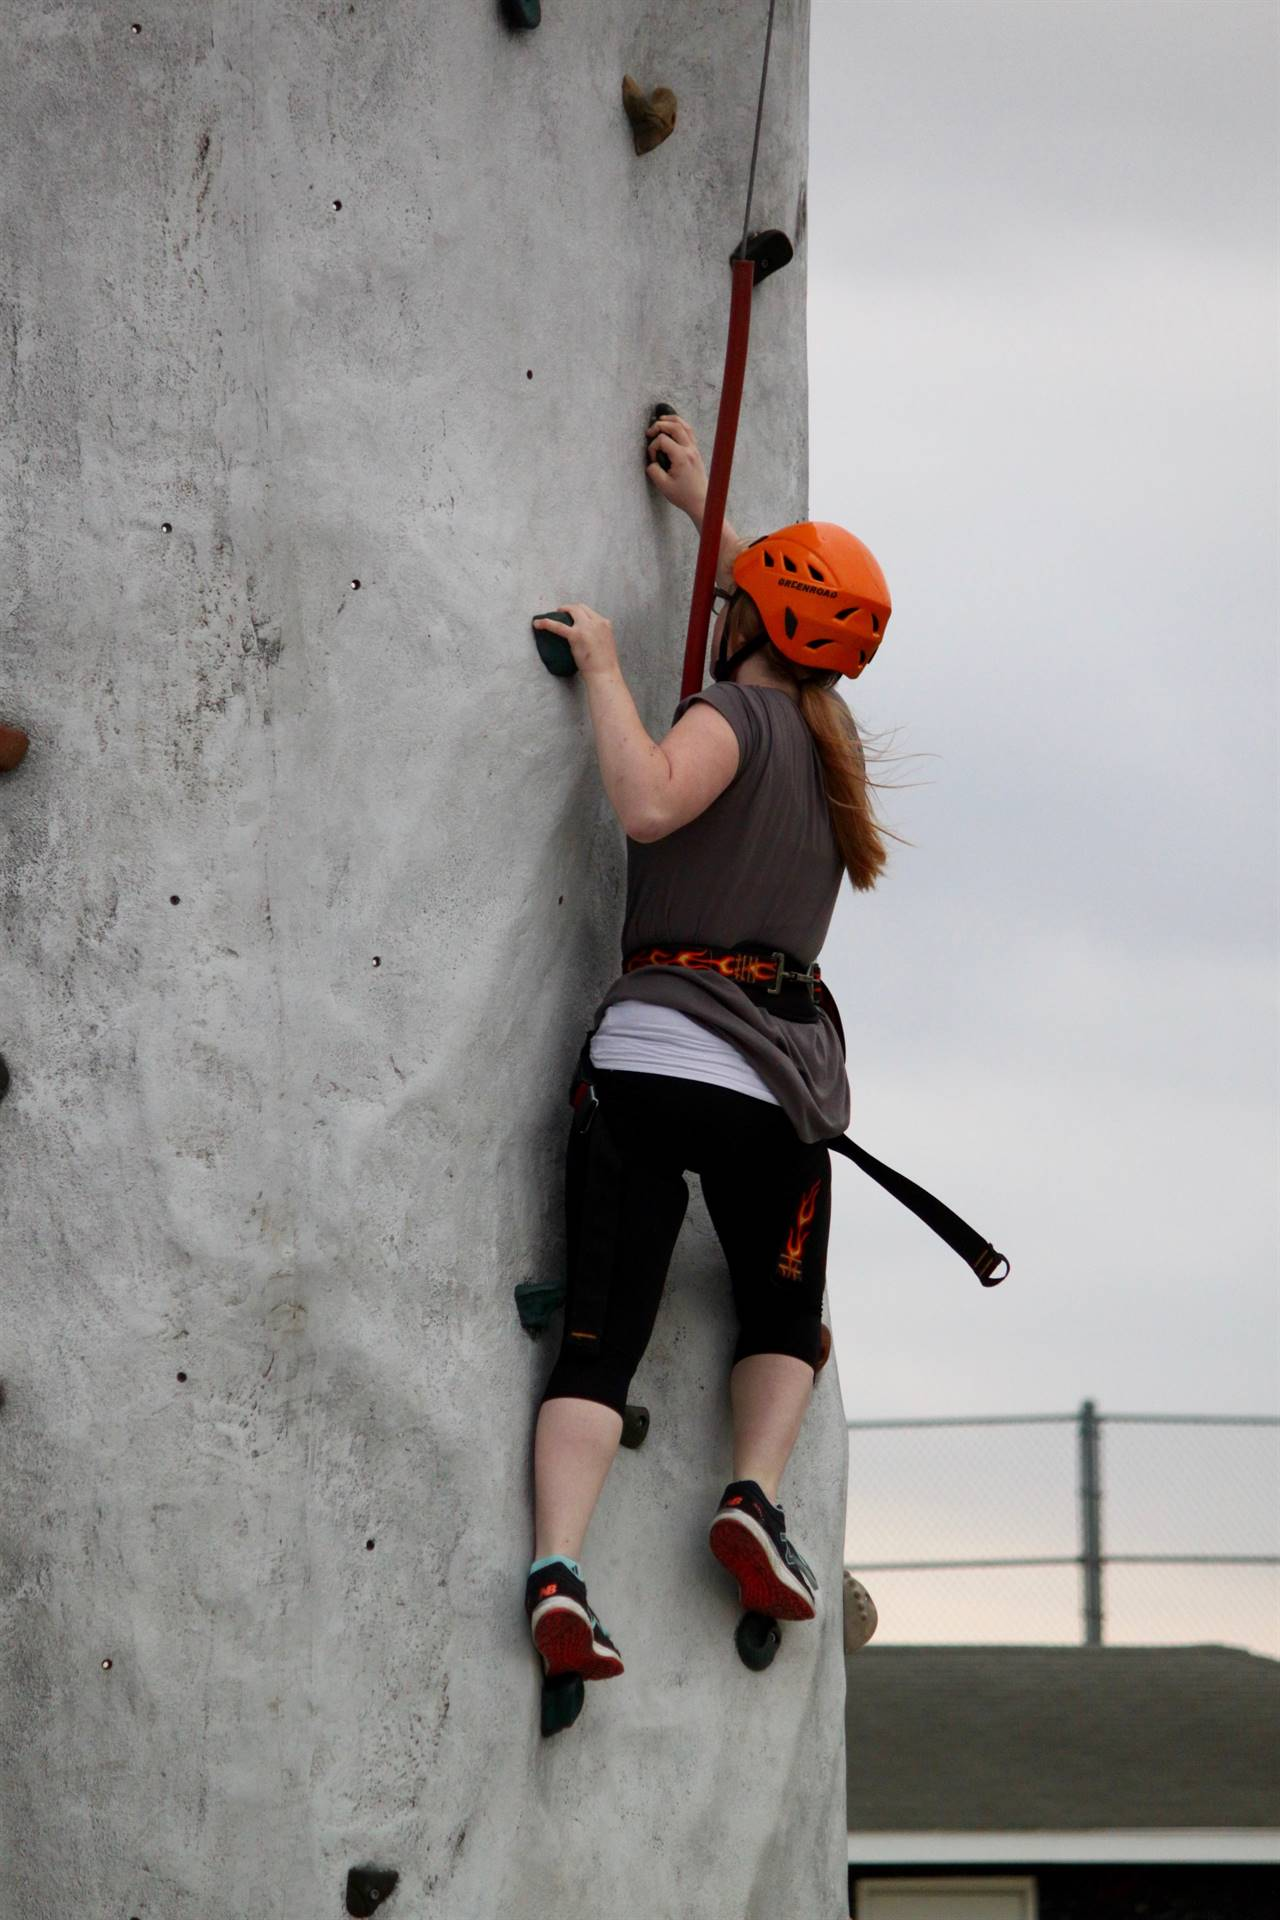 GHV student climbing rock wall in physical education class